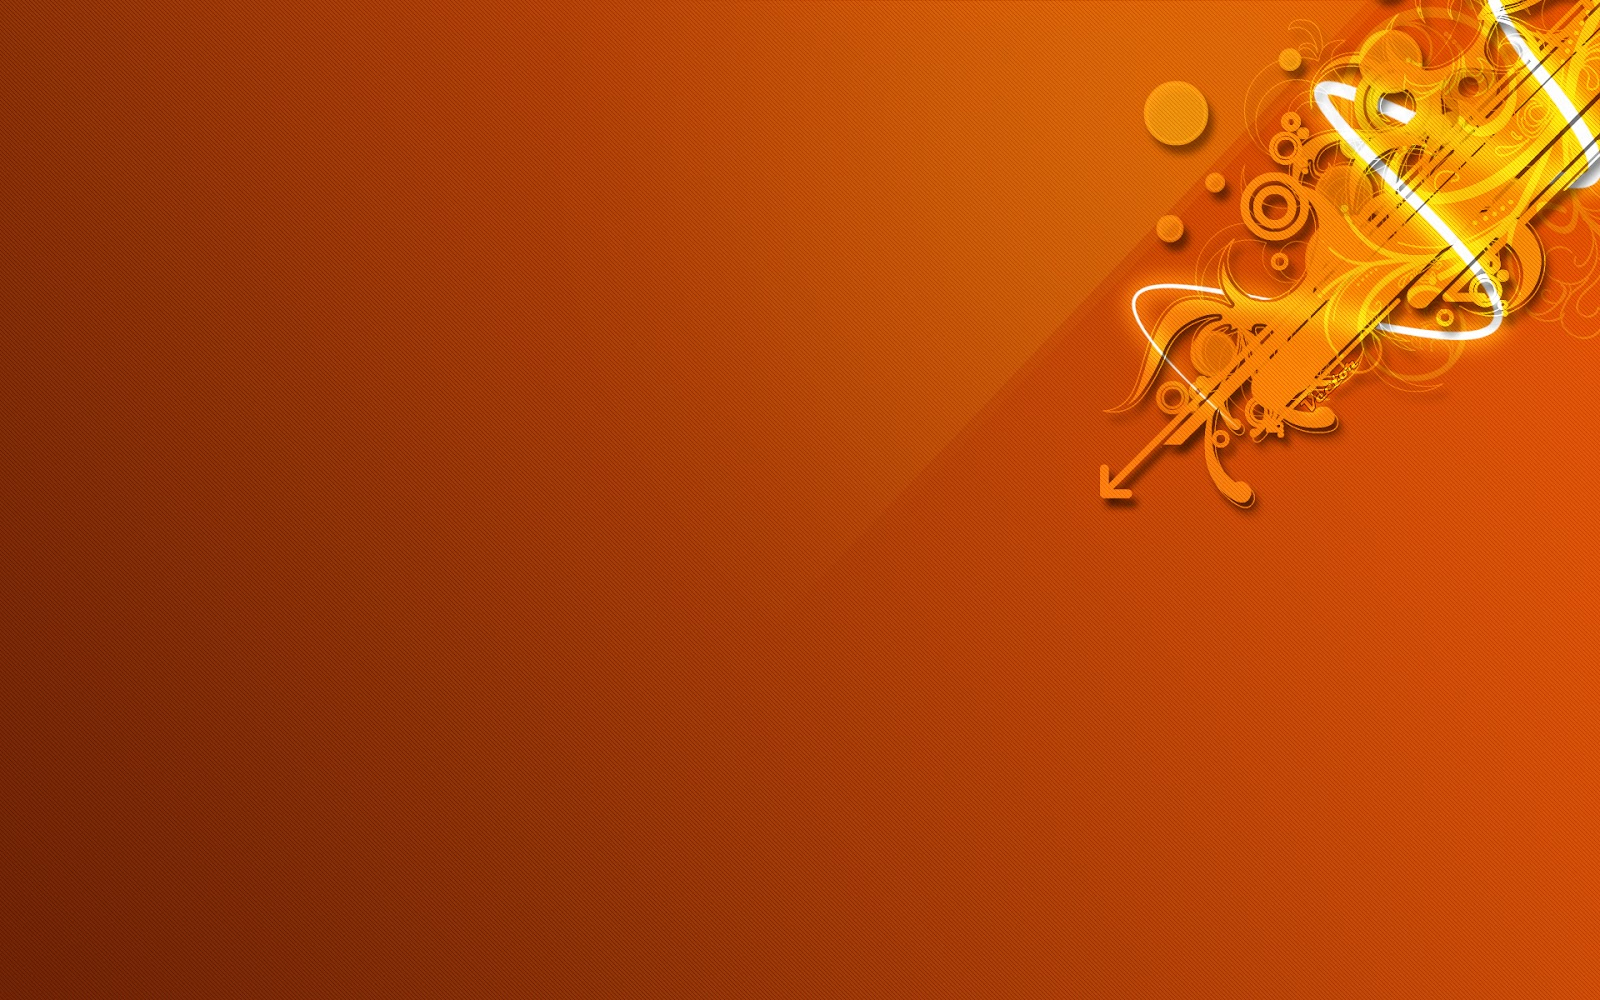 Orange wallpaper full hd